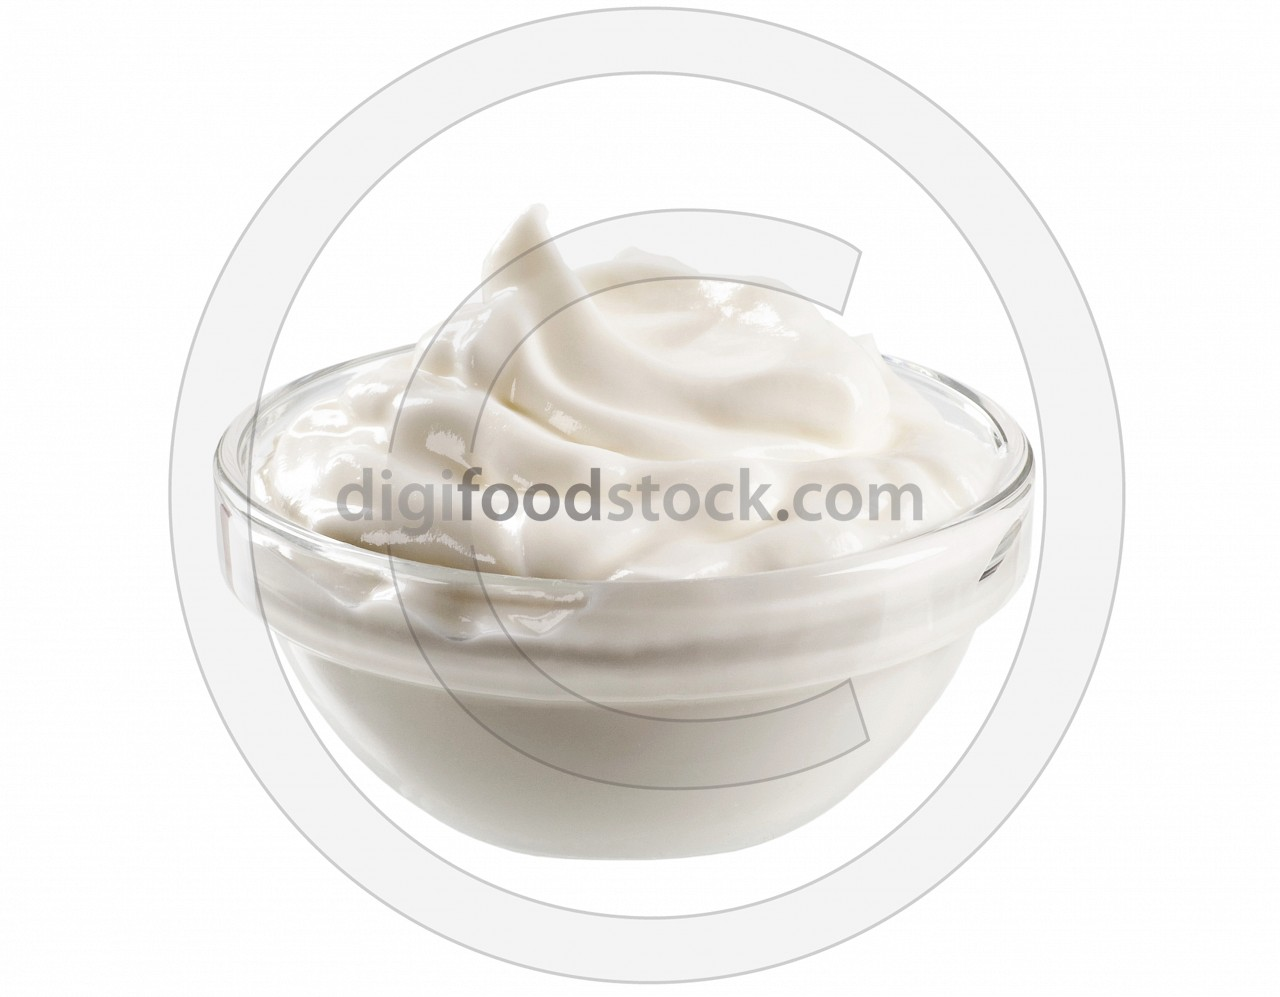 Swirl of smooth cream